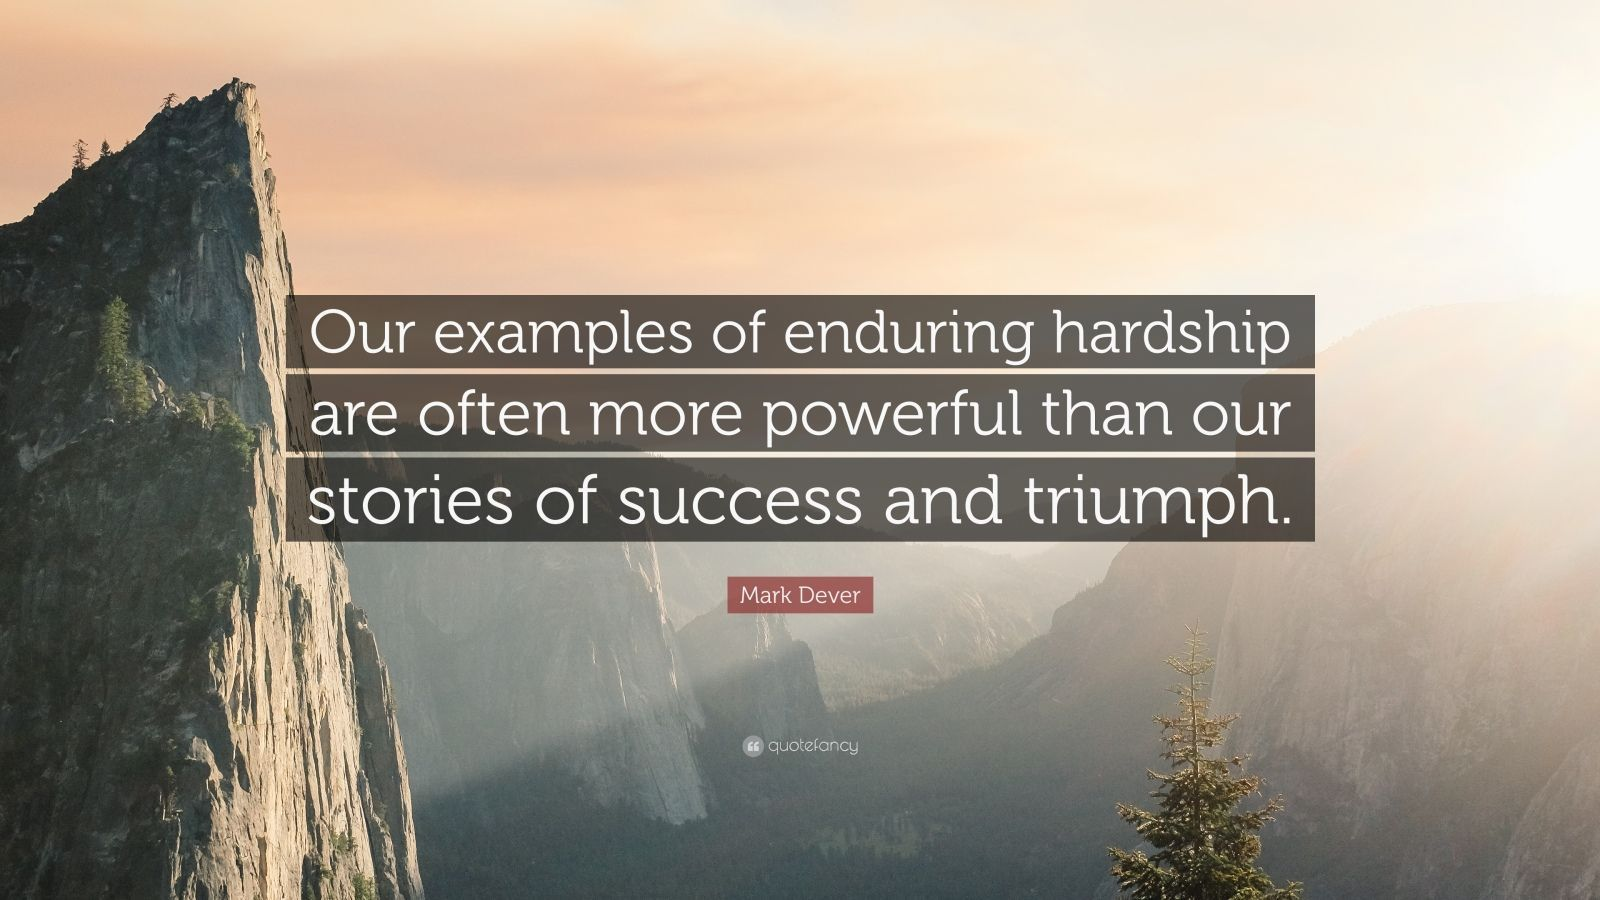 Mark Dever Quote Our Examples Of Enduring Hardship Are Often More Powerful Than Our Stories Of Success And Triumph St Augustine Quotes Max Lucado Quotes Life